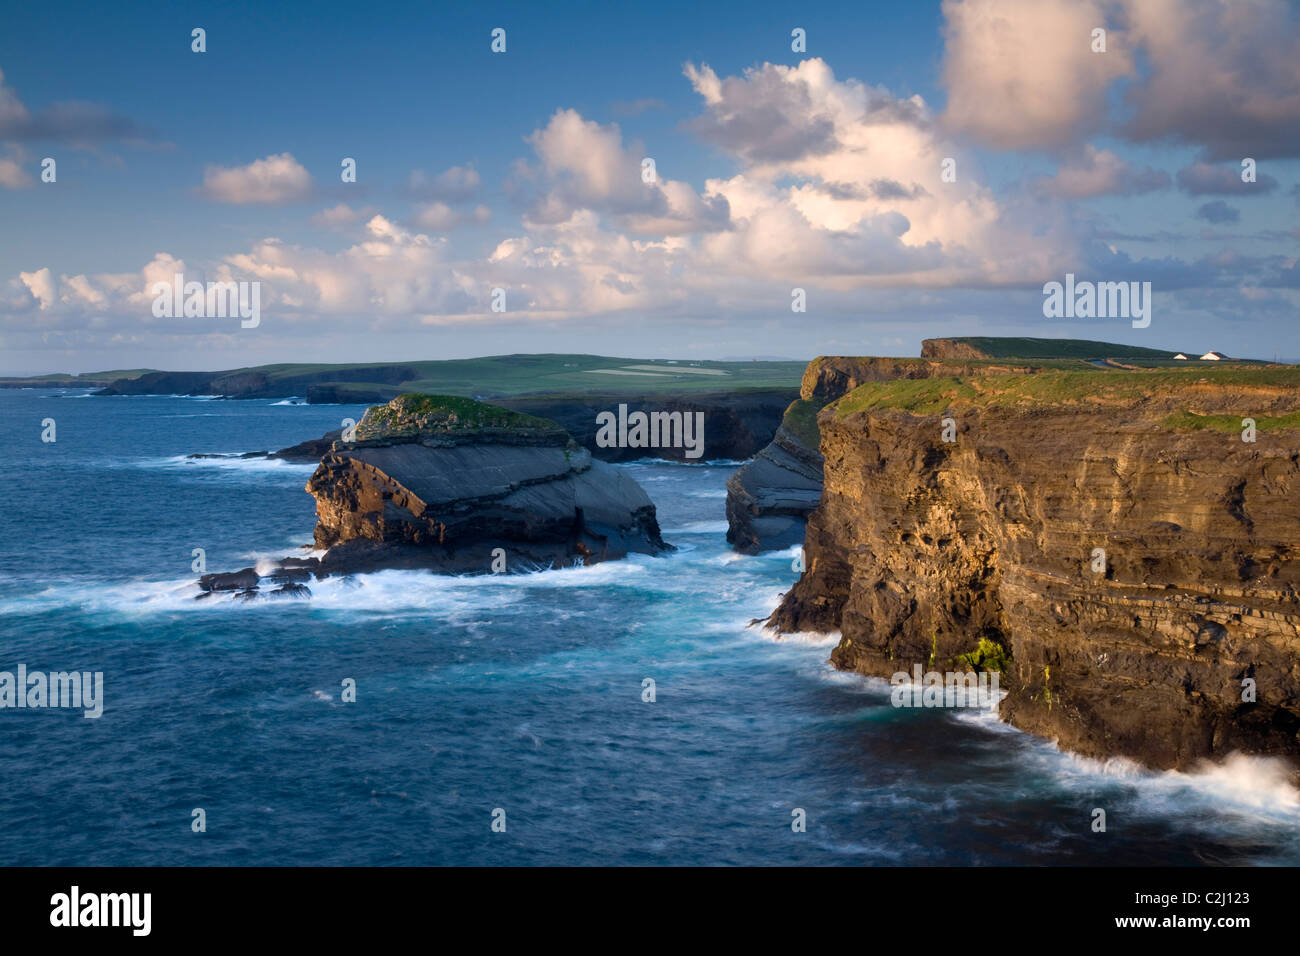 Evening light on the Atlantic coastline near Loop Head, County Clare, Ireland. - Stock Image